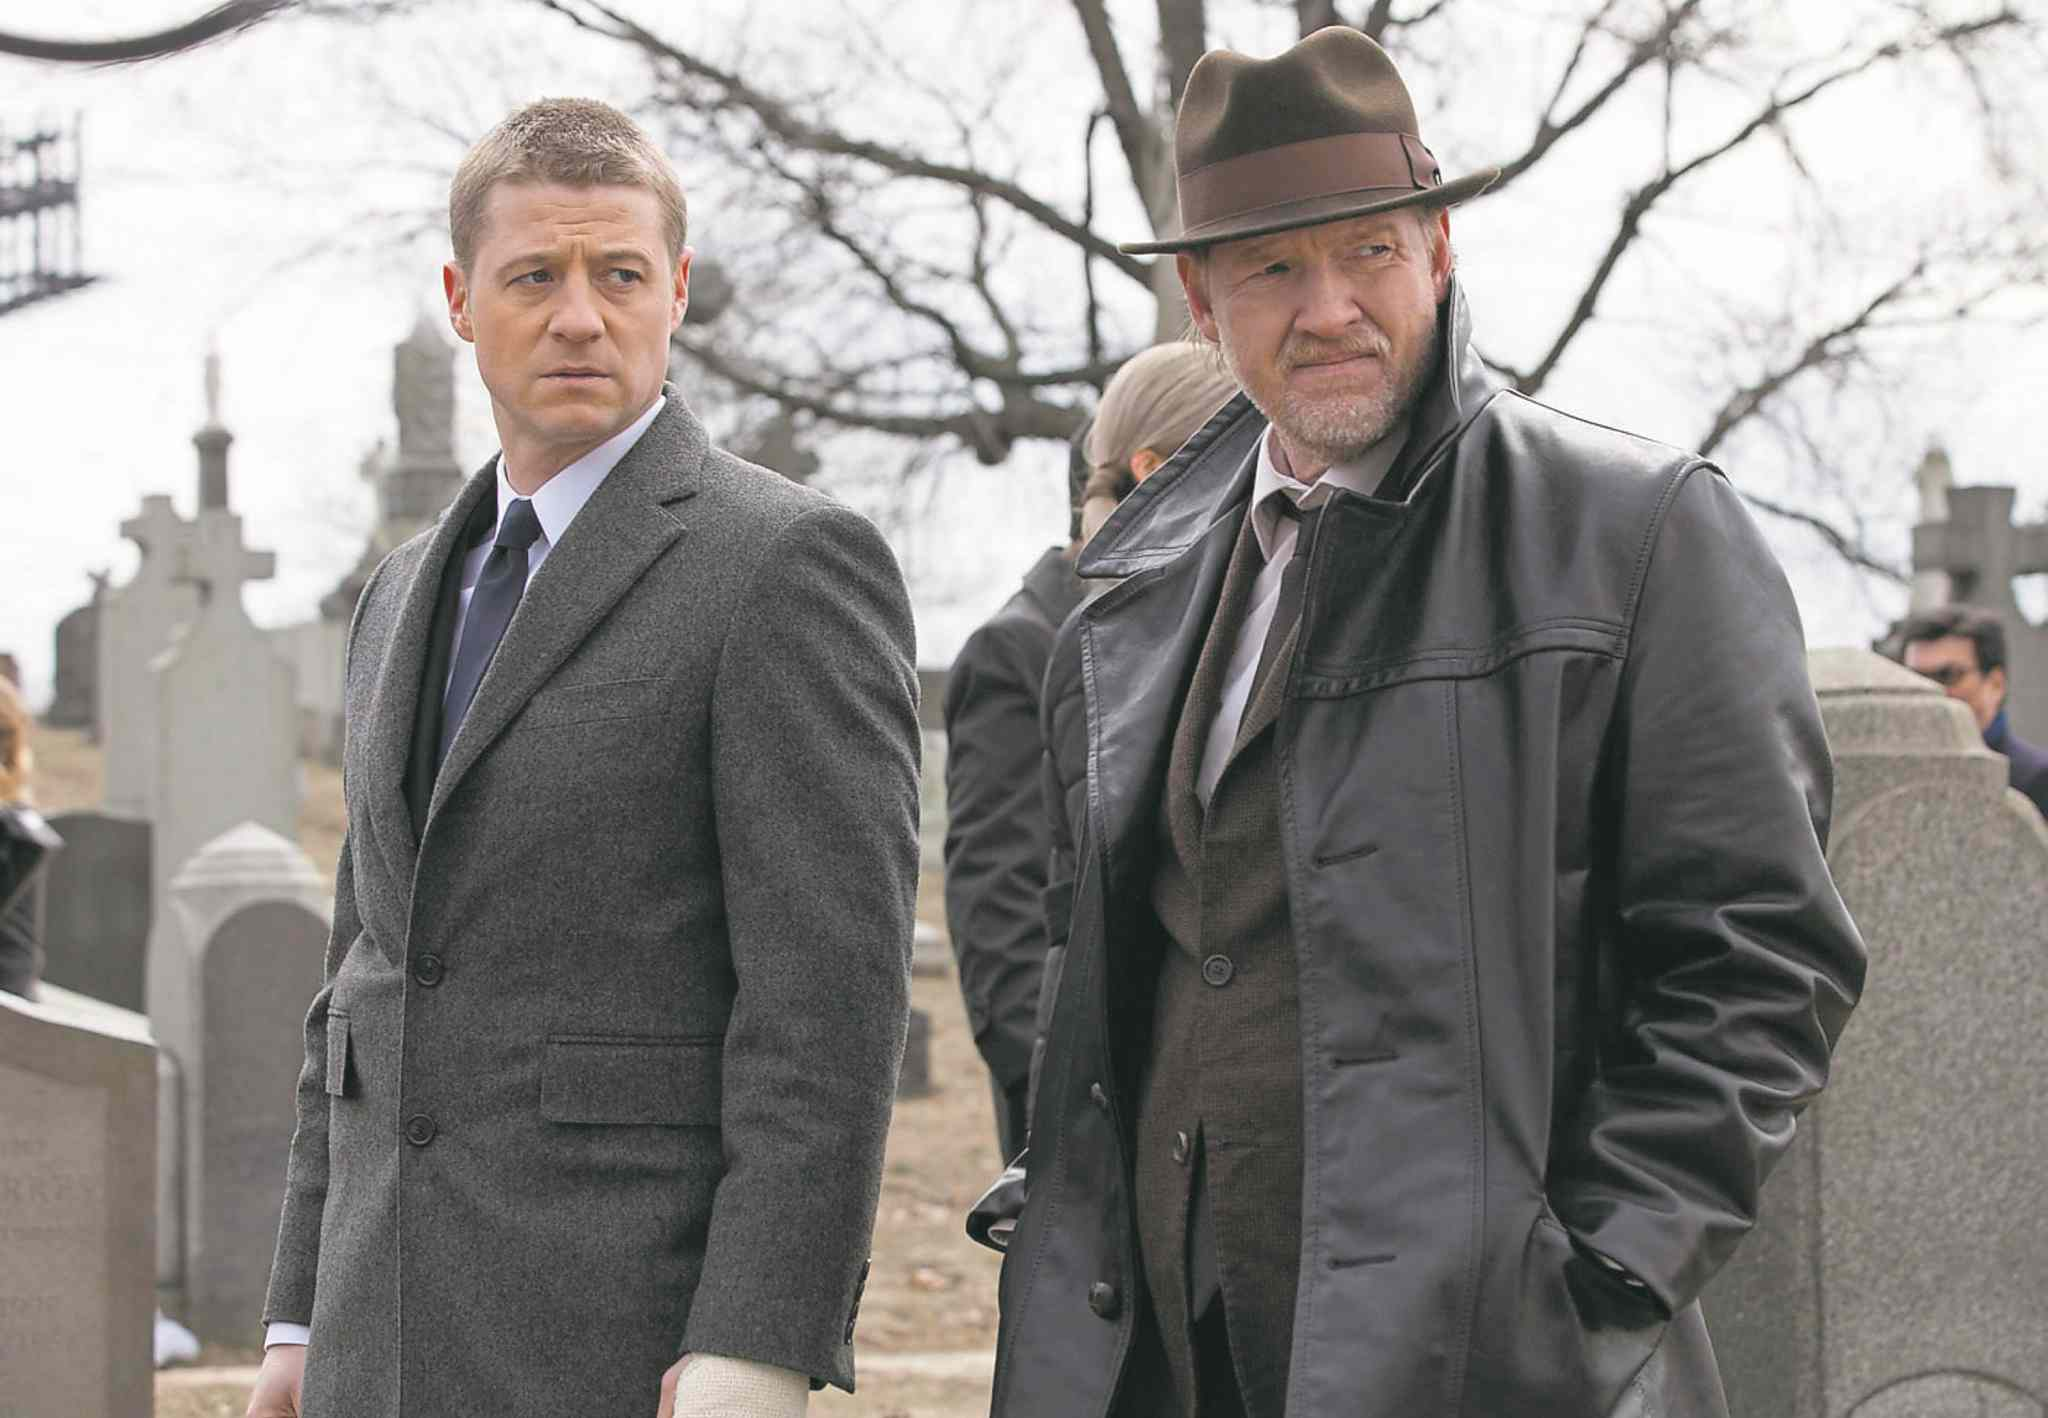 Jessica Migli/Fox Ben McKenzie, left, and Donal Logue star in the stylish Batman prequel Gotham, fall TV's most critically loved show.